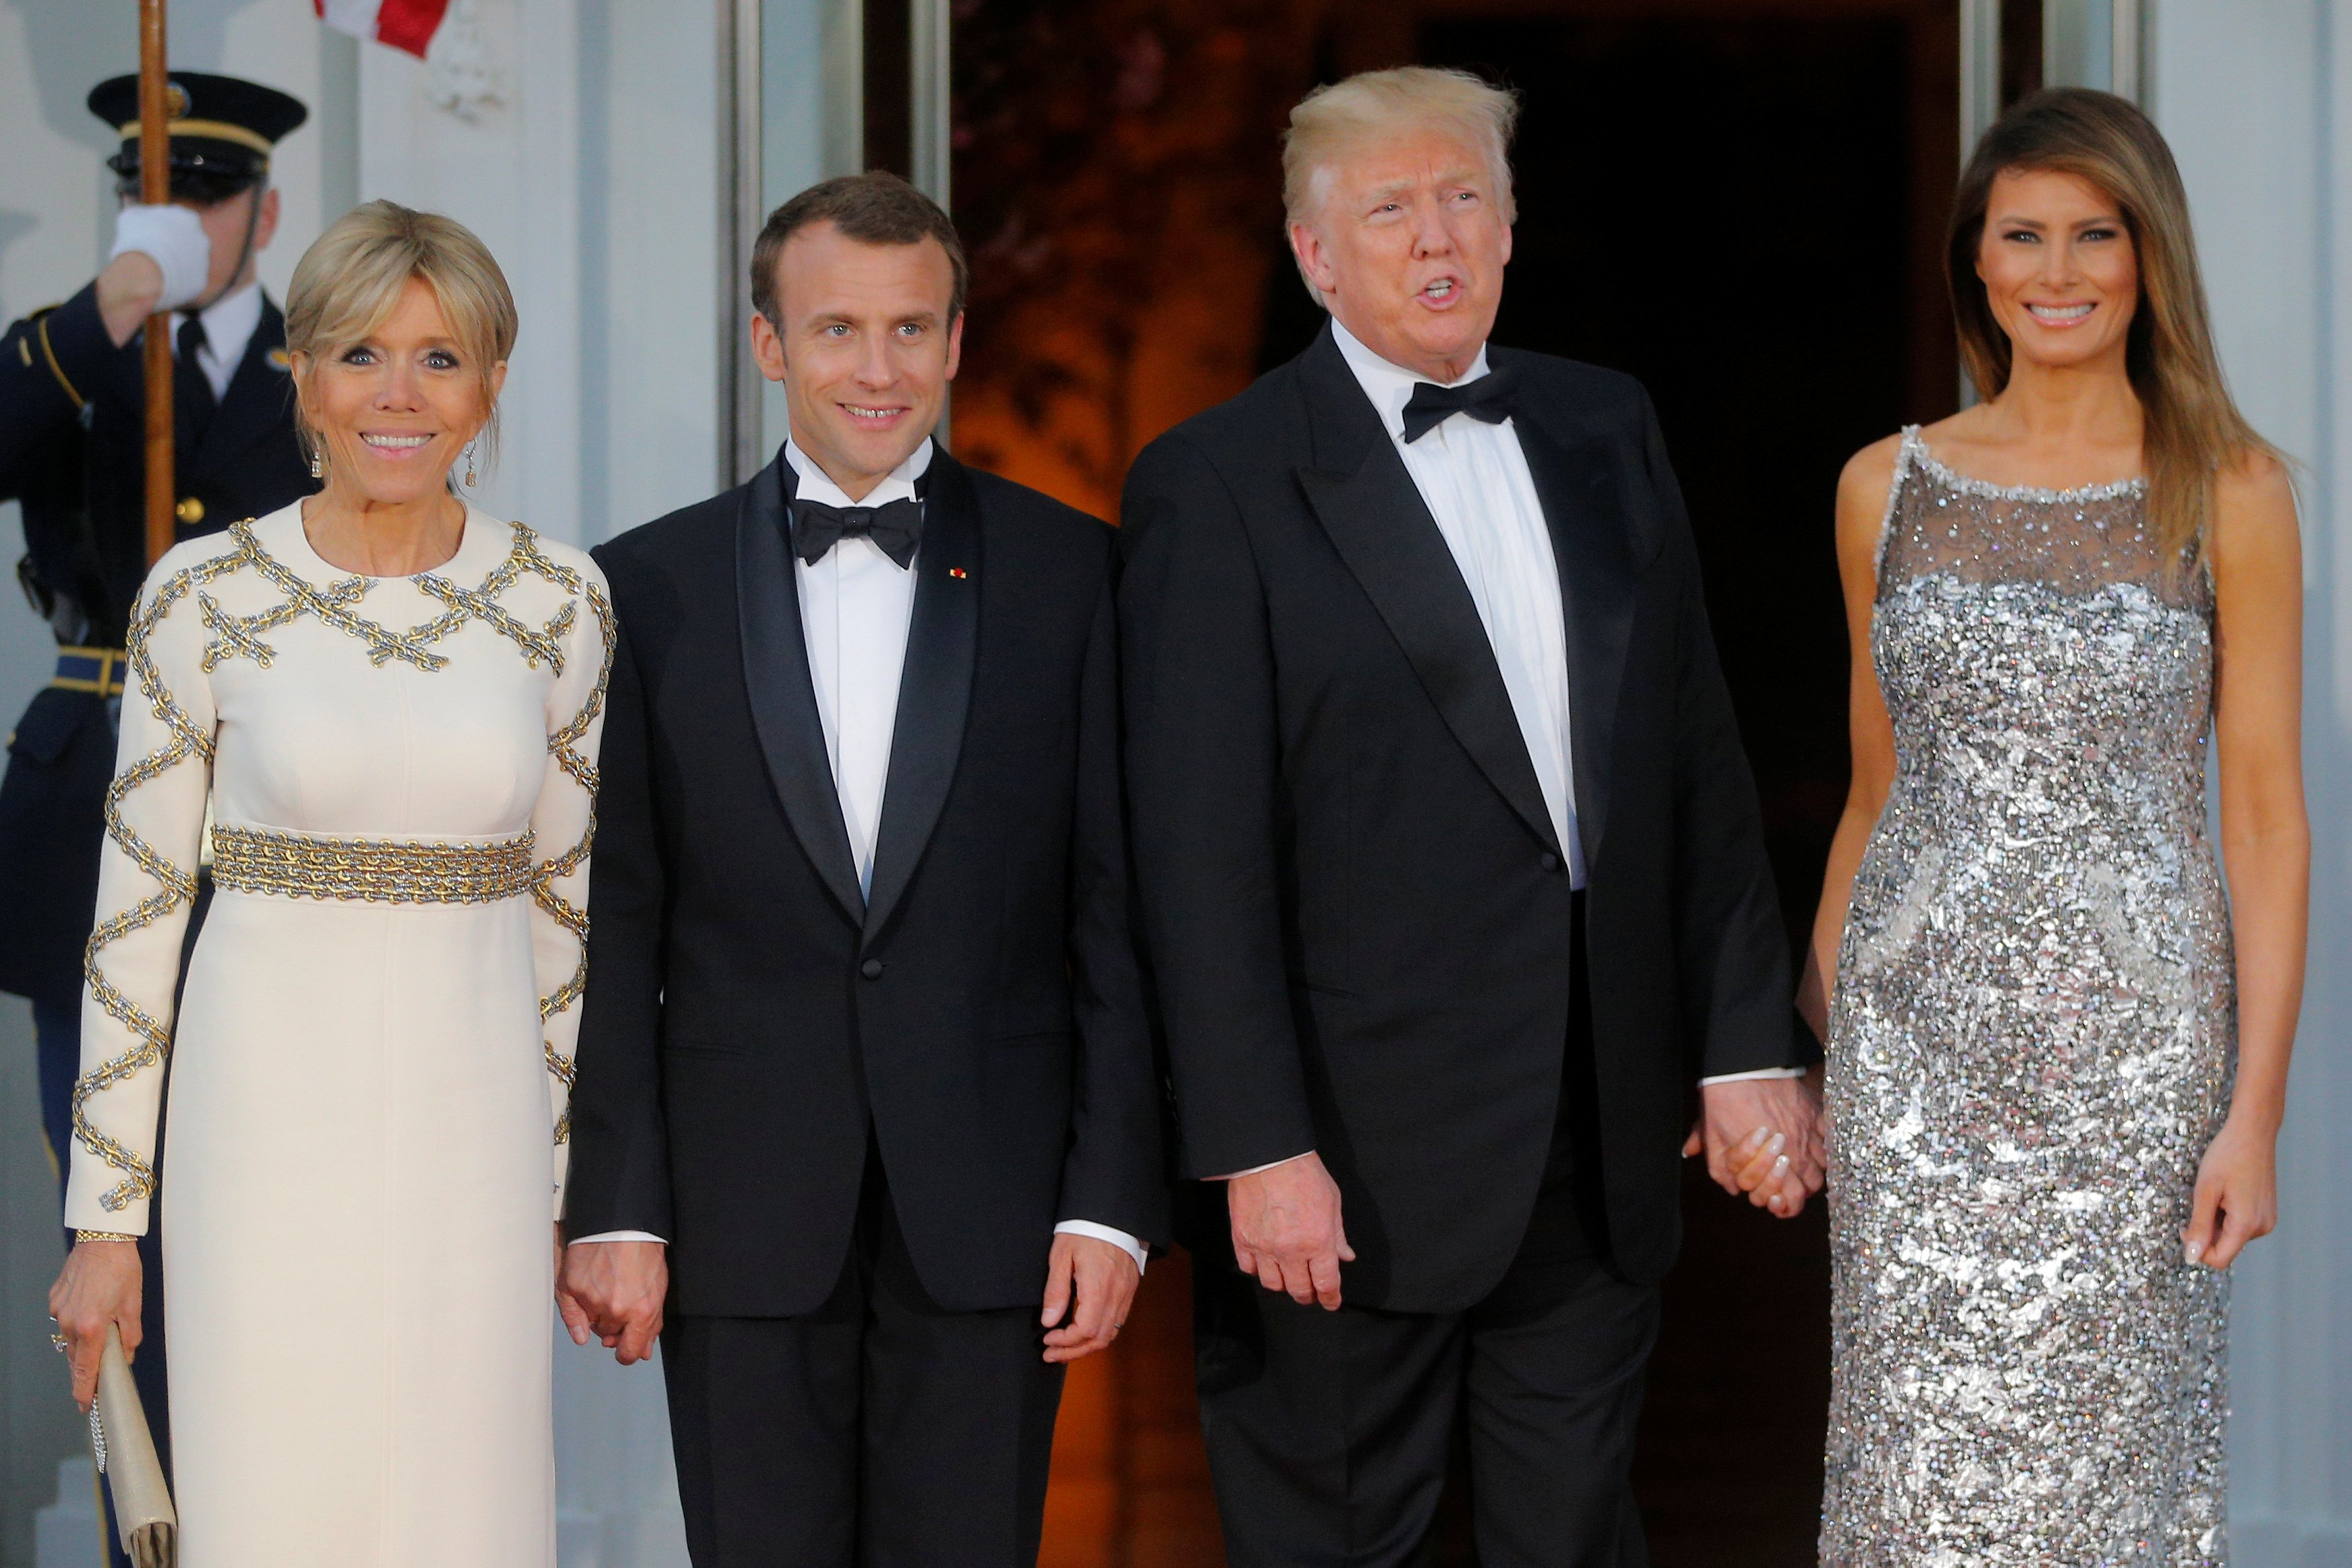 U.S. President Trump and first lady Melania welcome French President Macron and his wife for a State Dinner at the White House in Washington